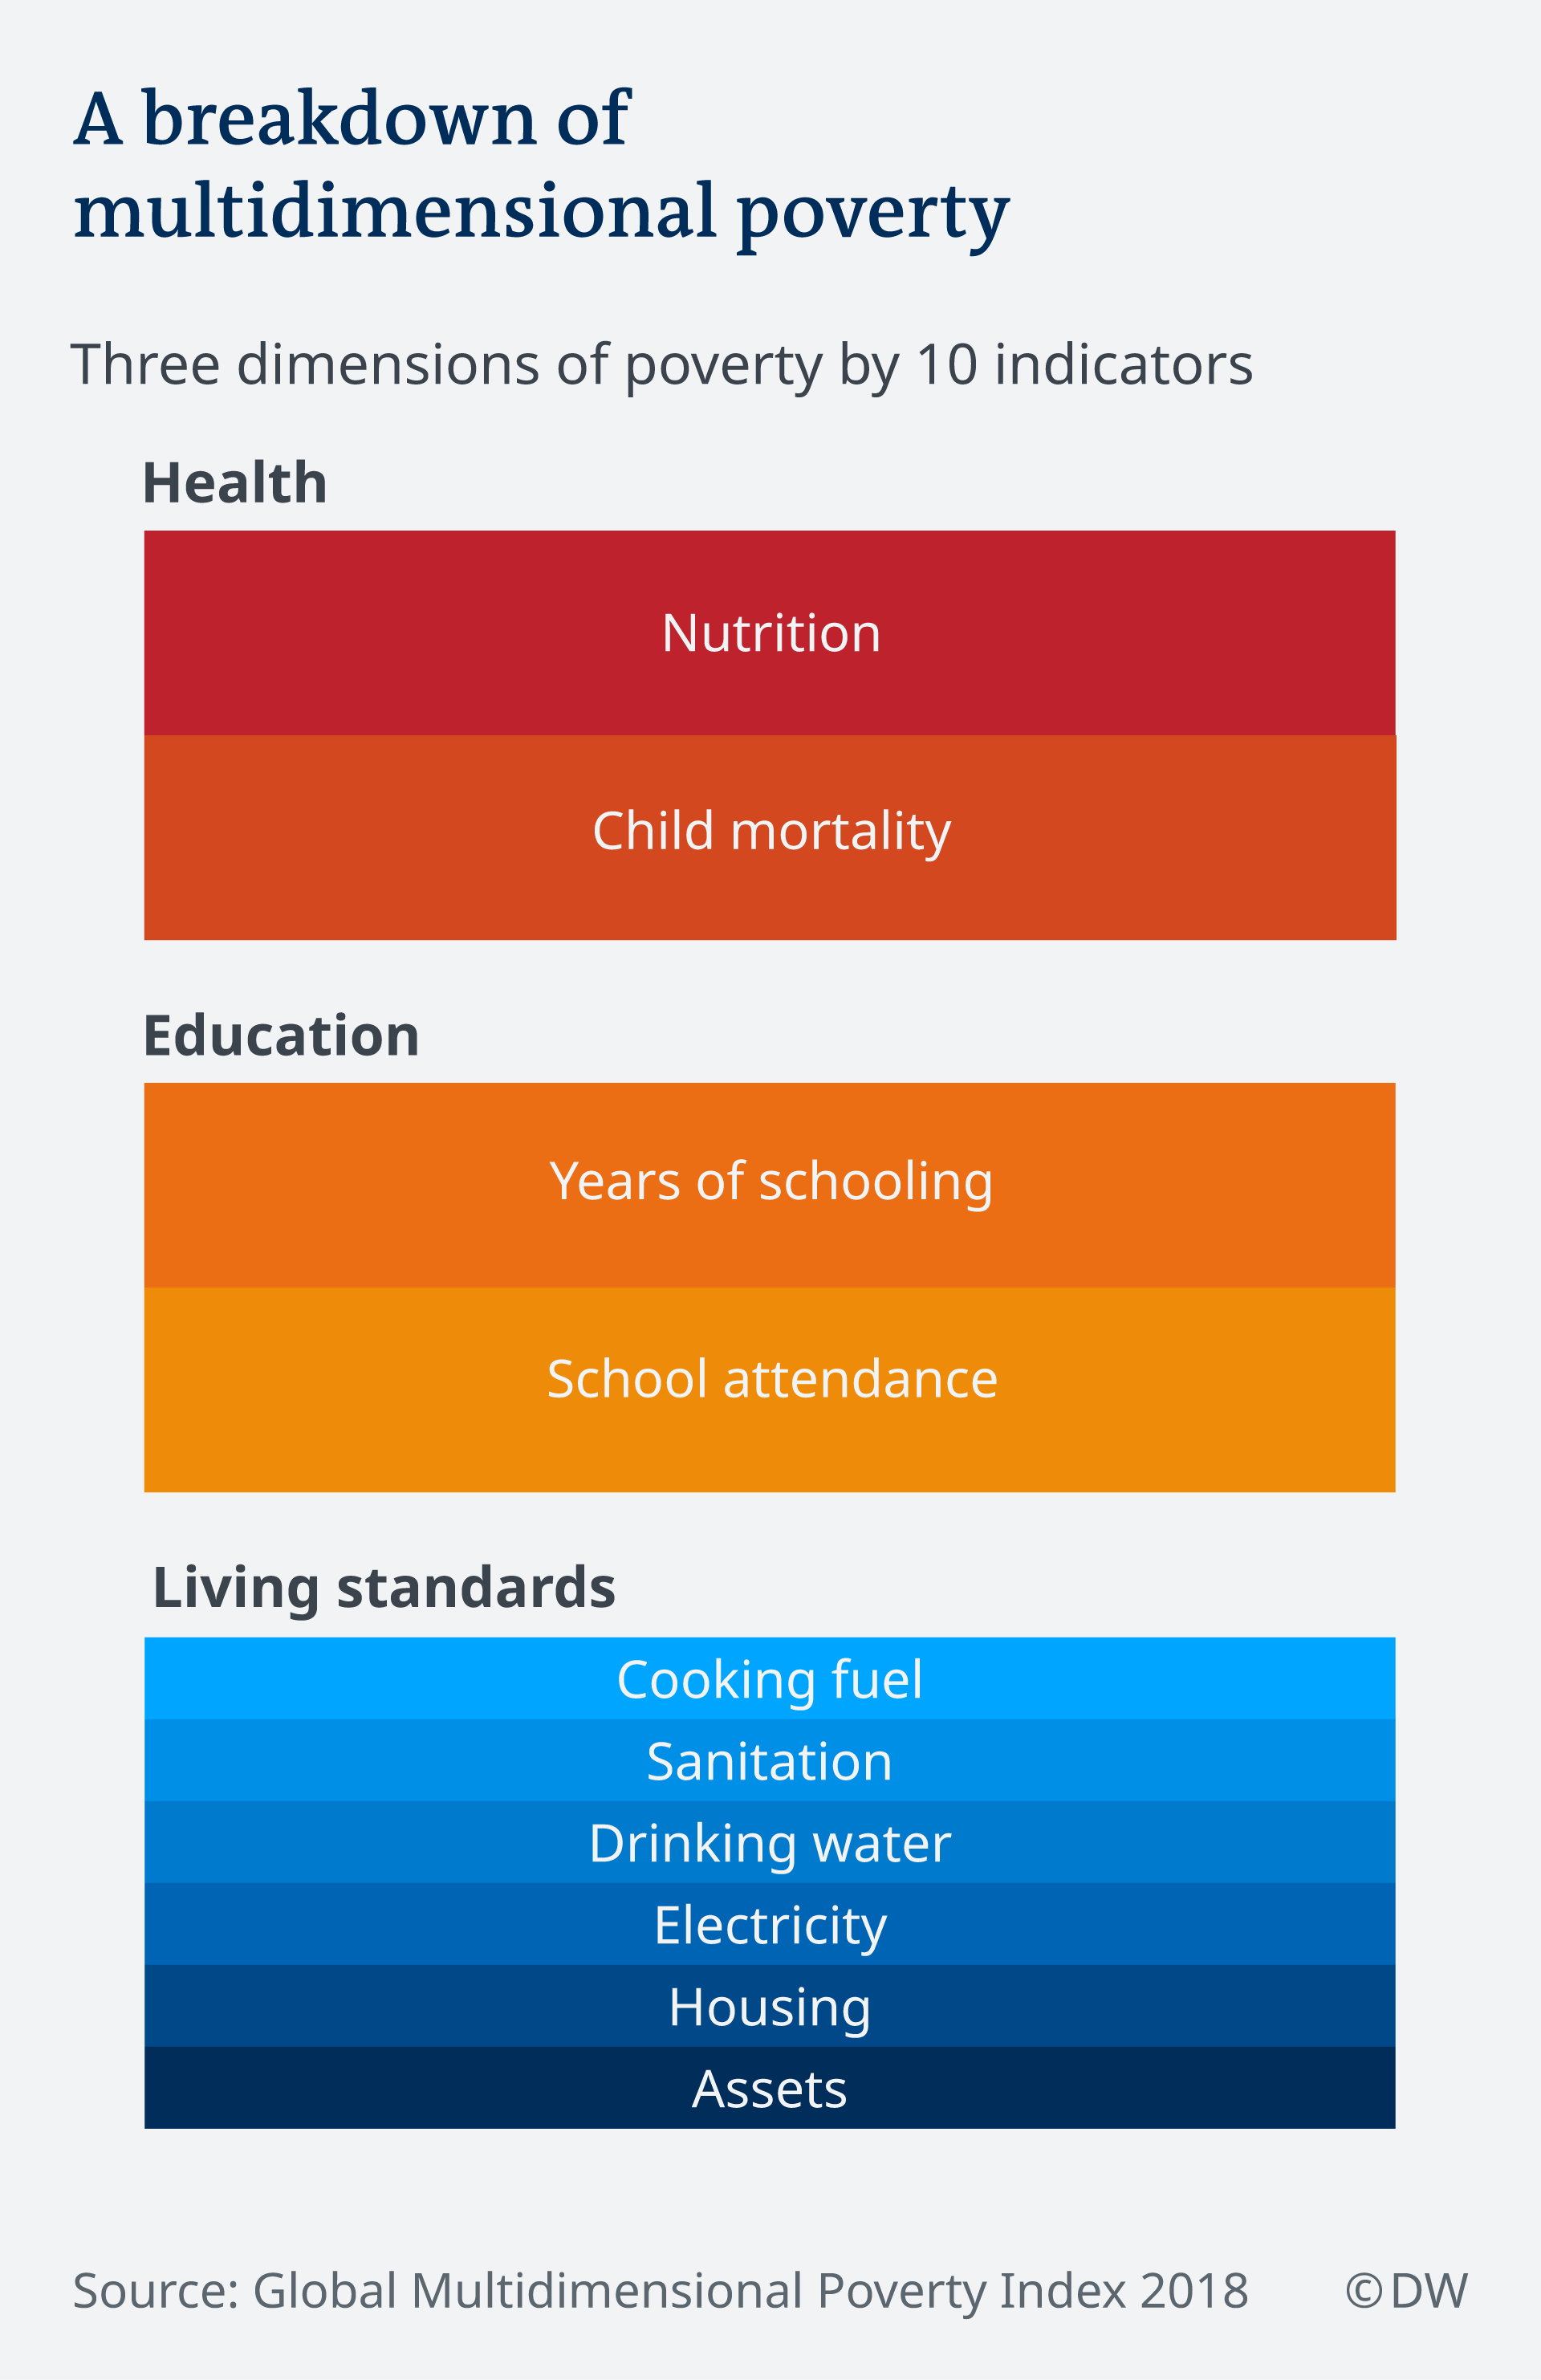 An infographic explaining the dimensions of multidimensional poverty, including health, education and living standards